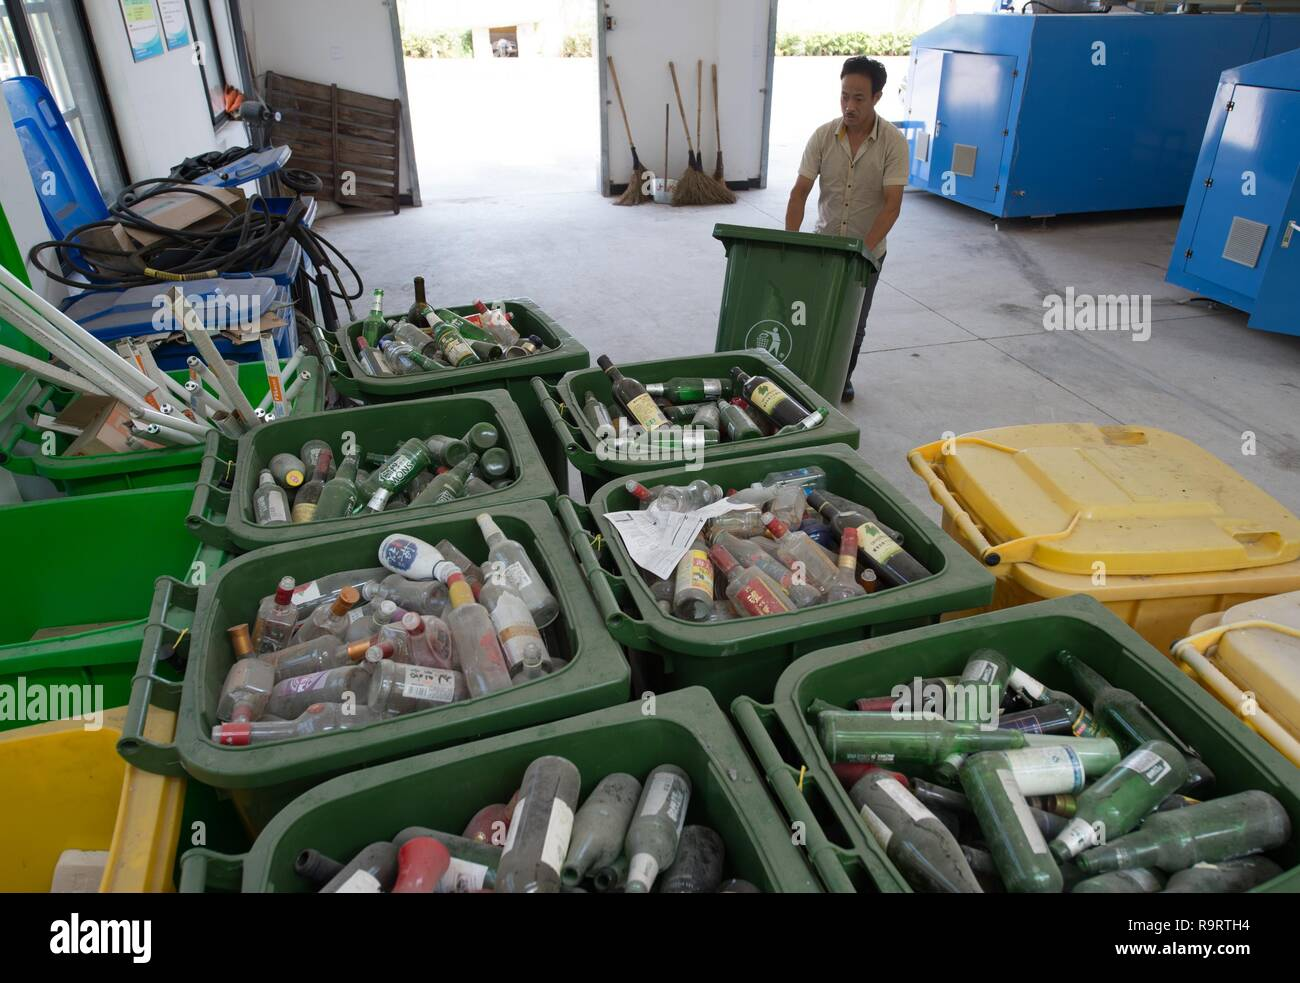 Beijing, China's Zhejiang Province. 3rd Aug, 2017. A staff member sorts and recycles glass products at Mulianwu Village in Anji County, east China's Zhejiang Province, Aug. 3, 2017. Since 2003, Zhejiang has implemented a project to overhaul the living environment in villages. At the end of last year, 97 percent of villages in the province had completed such overhauls. Credit: Weng Xingyang/Xinhua/Alamy Live News - Stock Image